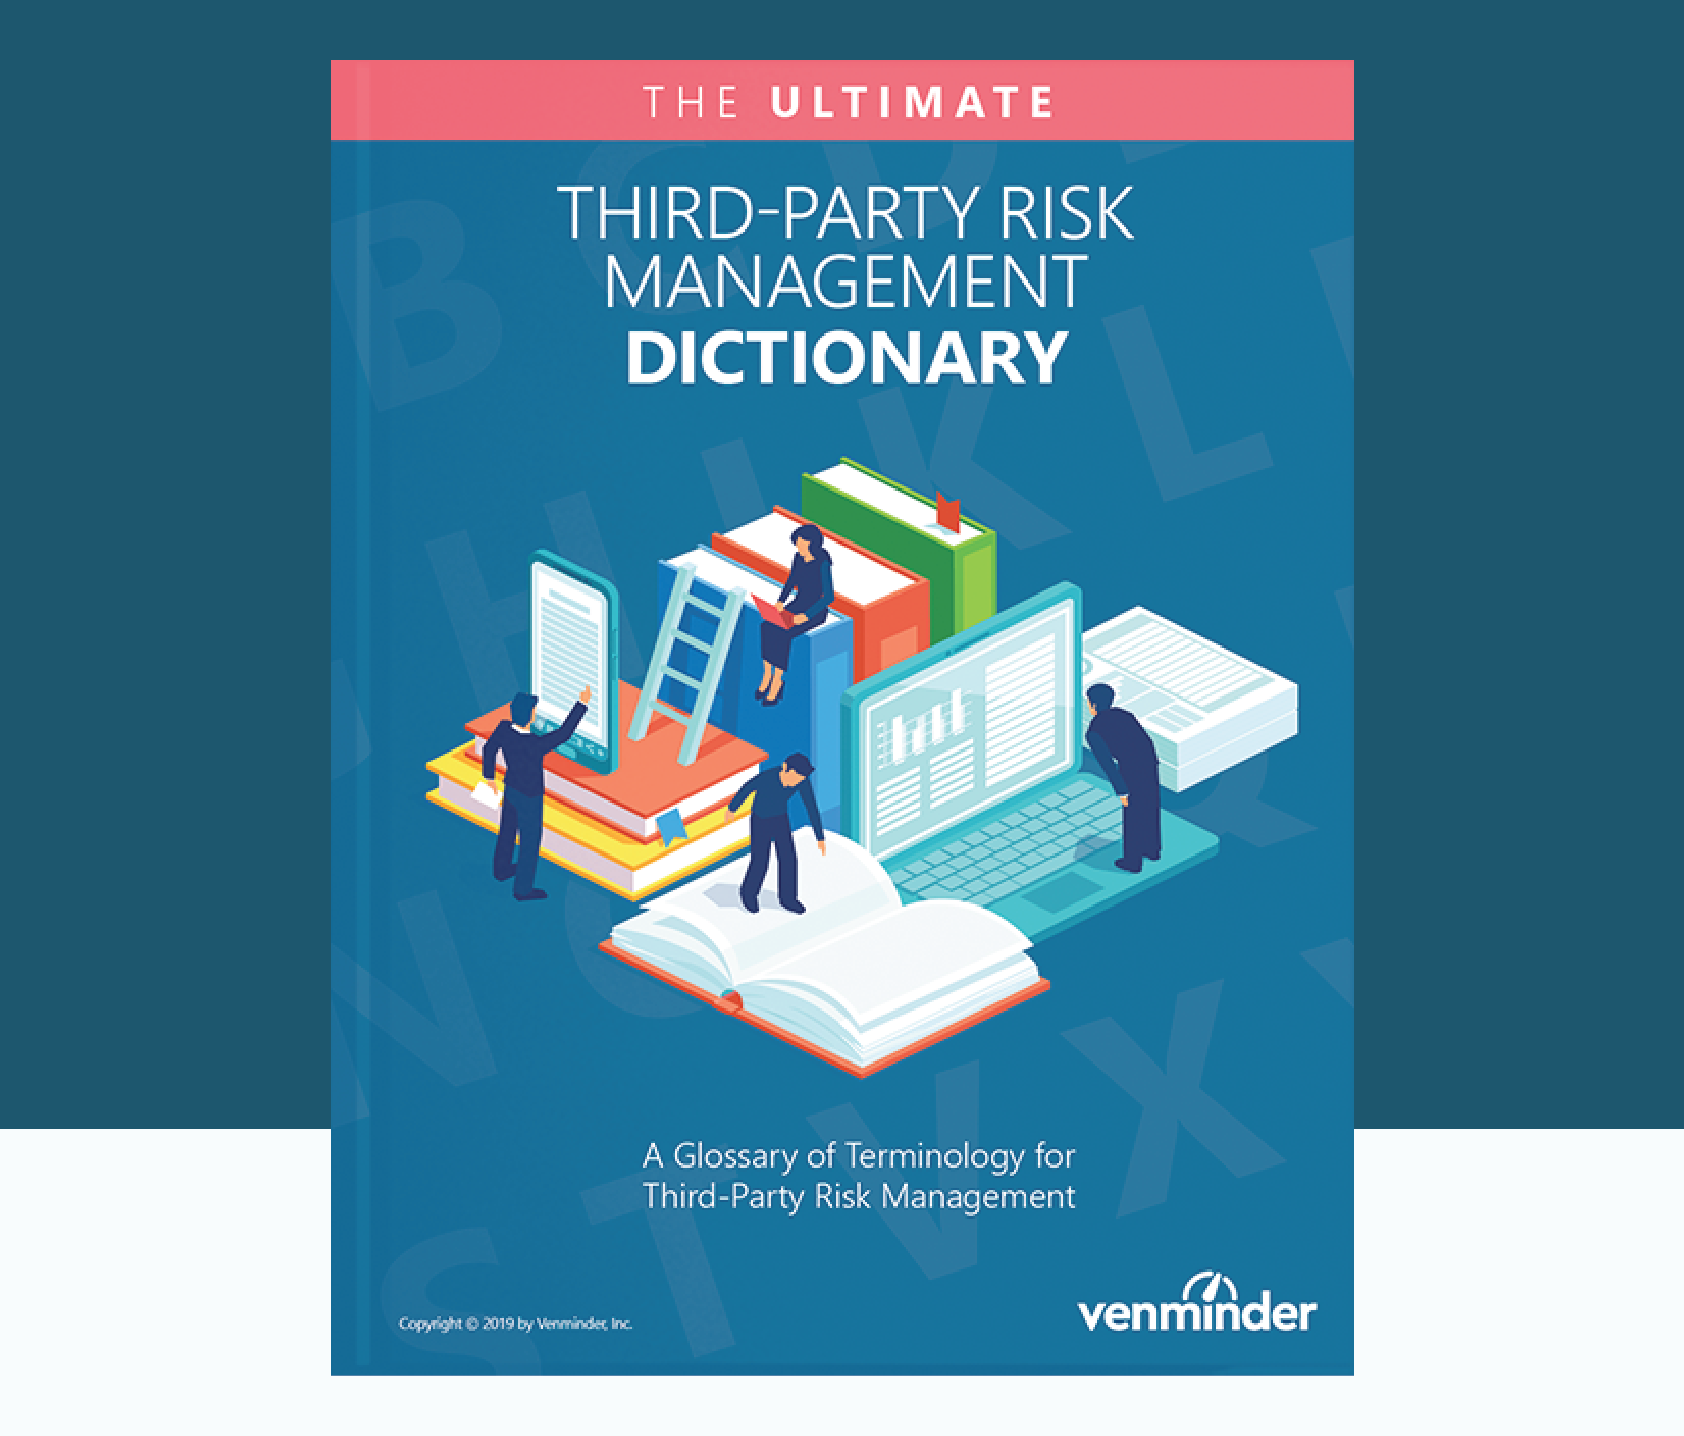 05.07.2019-resources-the-ultimate-third-party-risk-management-dictionary